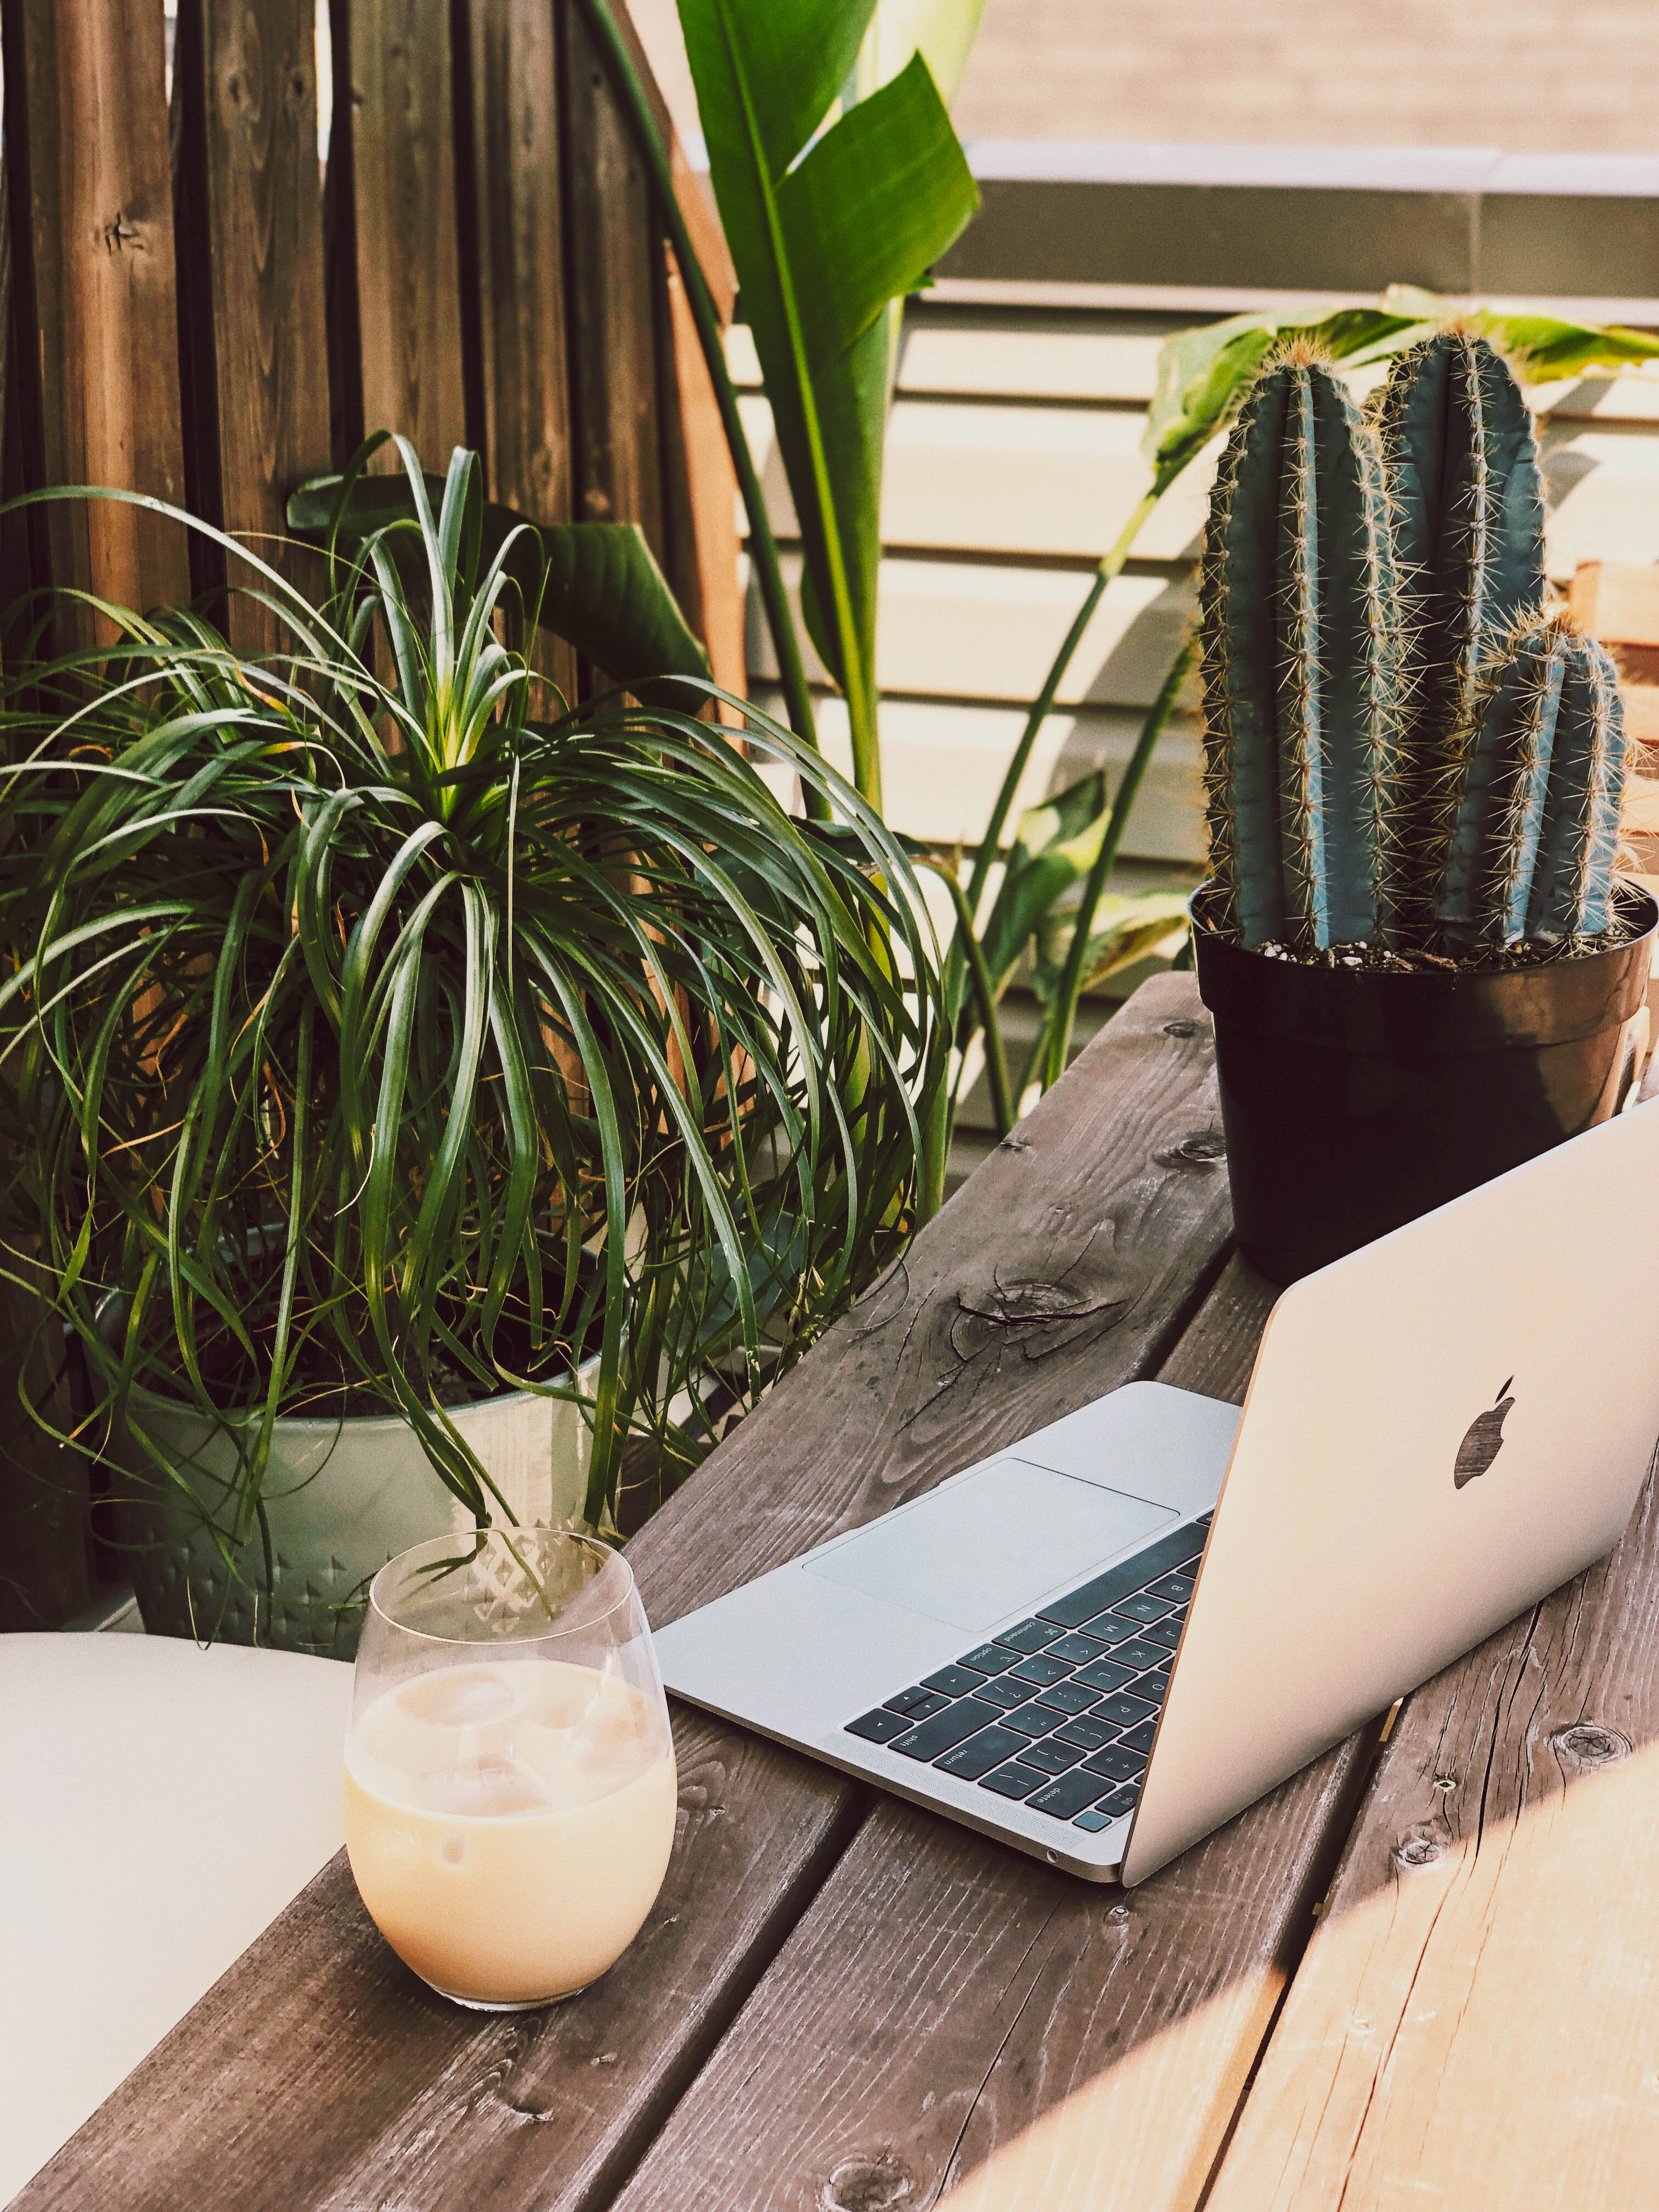 home-office-setup-with-laptop-on-table-surrounded-by-plants-and-cold-drink